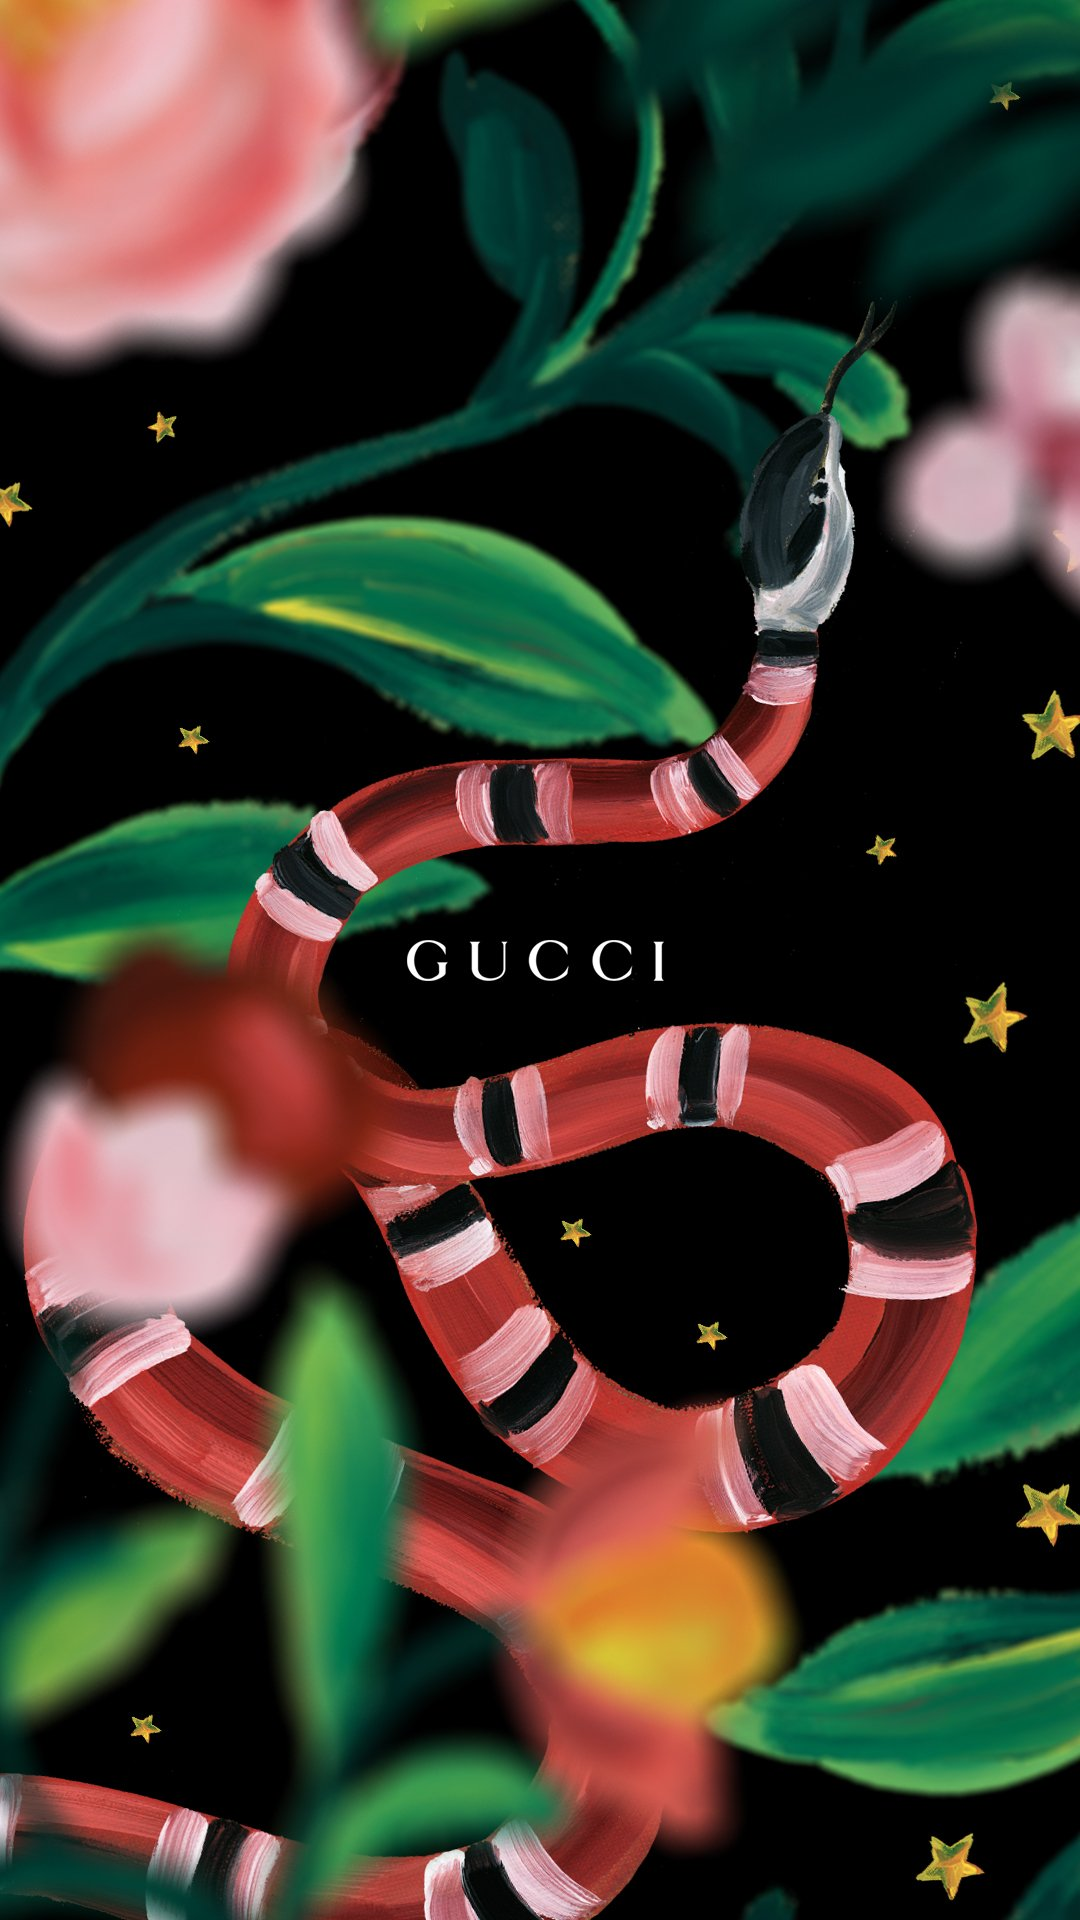 Gucci Snake Wallpaper Wallpapersafari